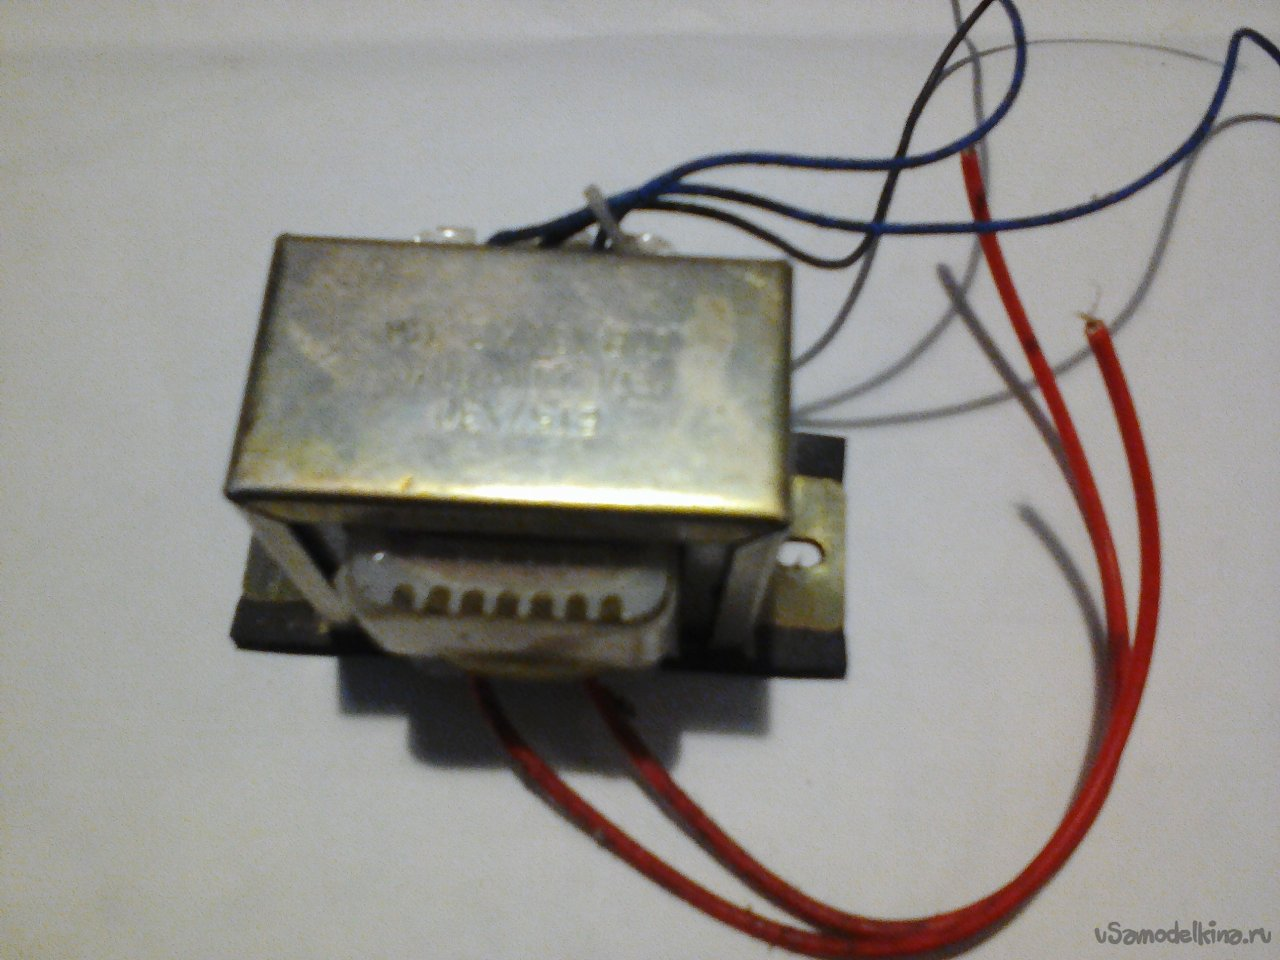 Converter with 12 to 220V, 50 Hz, 75 W. On field-effect transistors